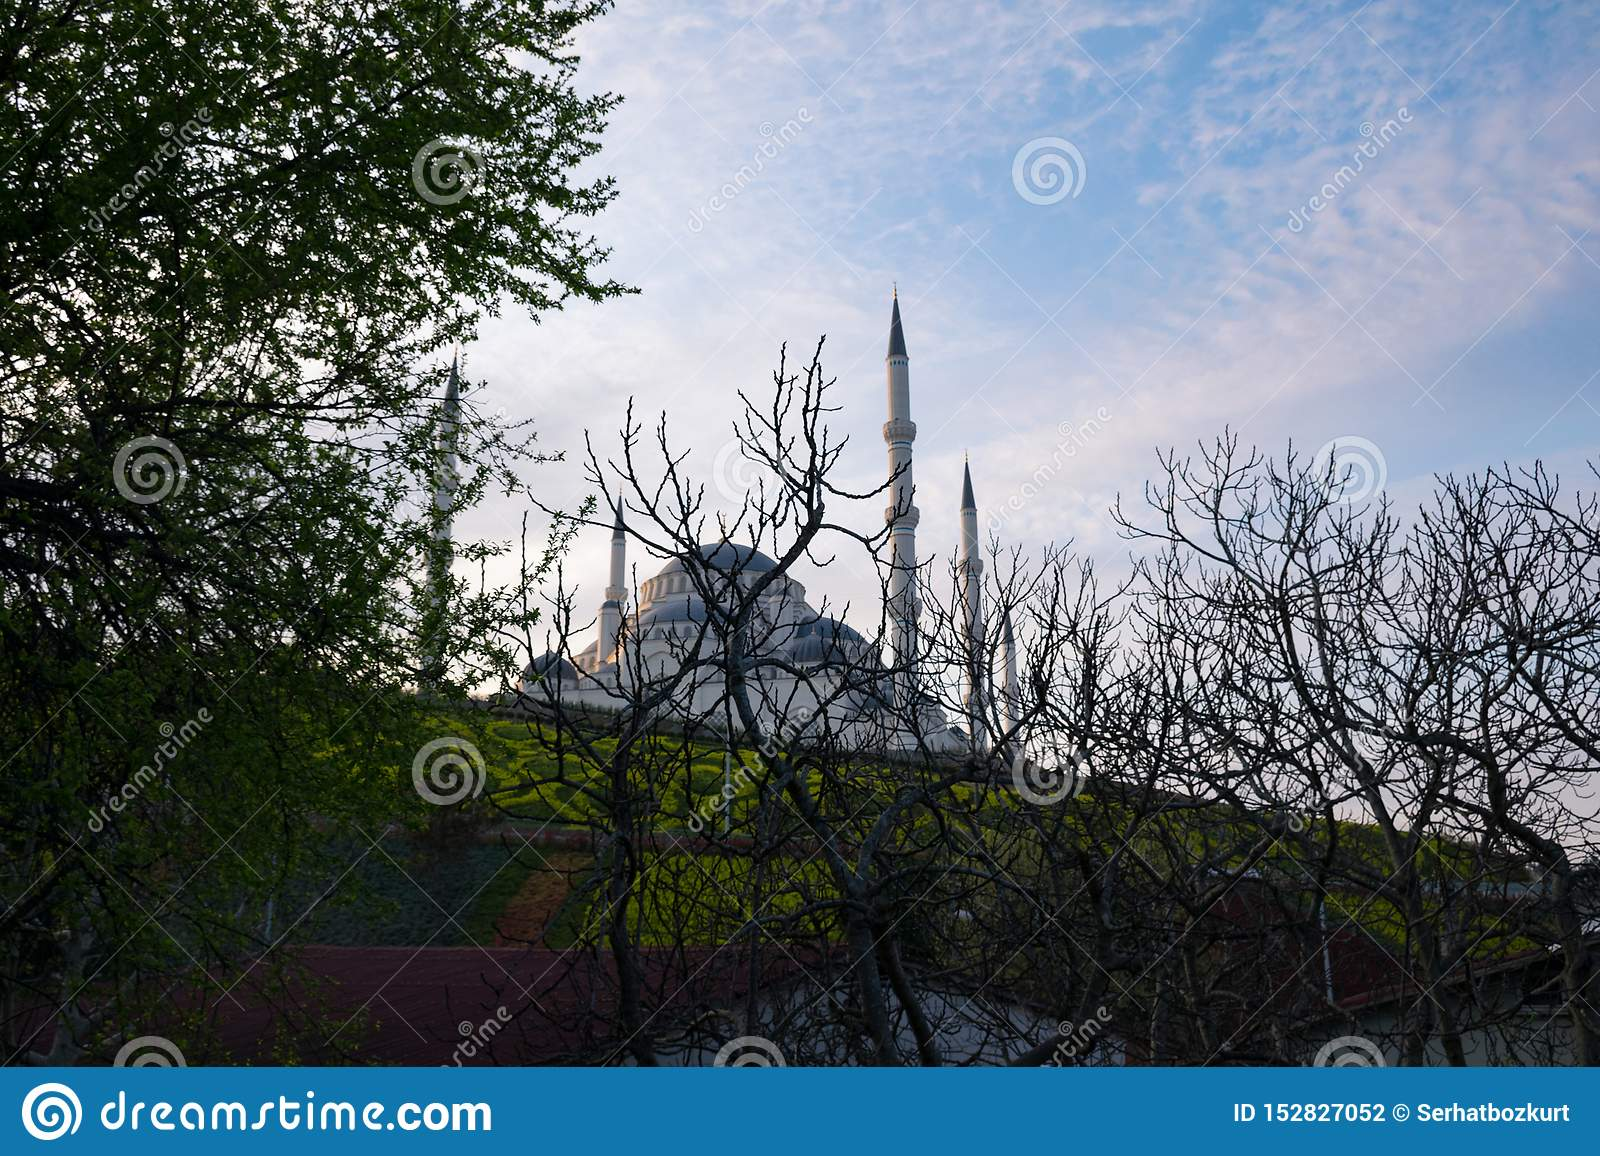 Camlica Mosque from different angles. Photo taken on 29th March 2019, İstanbul, Turkey